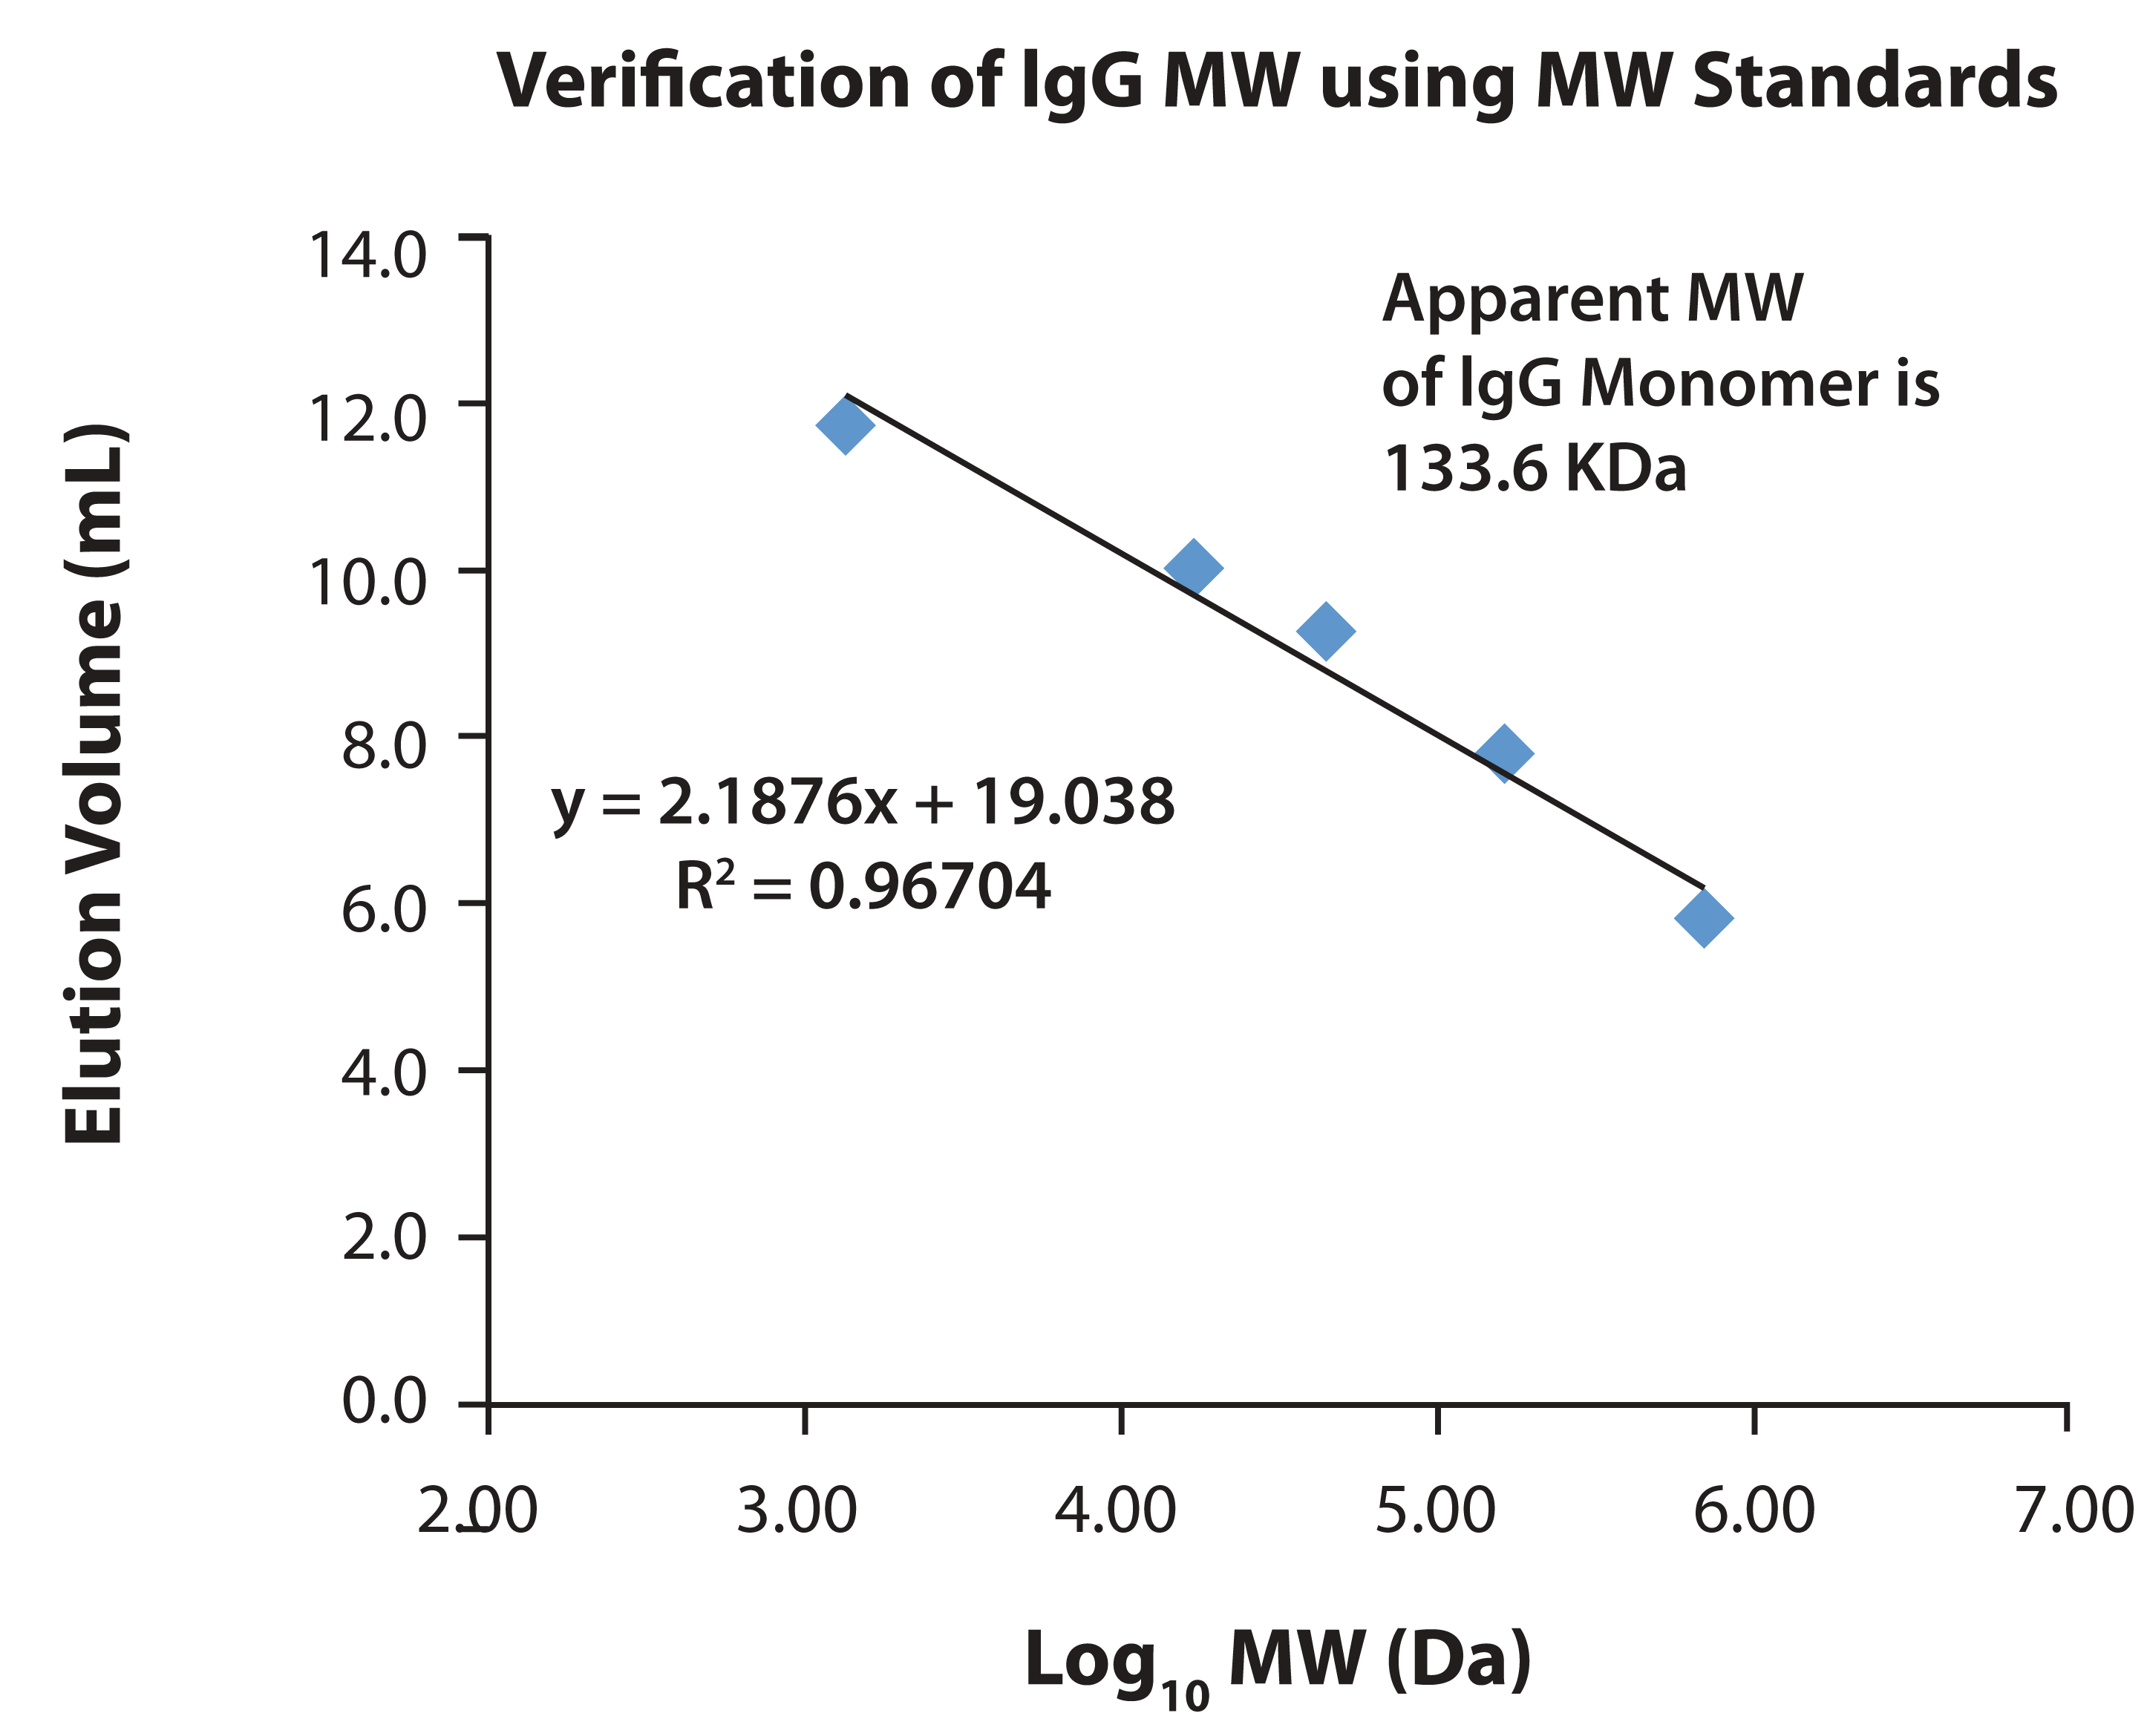 Figure 5. Verification of lgG Monomer MW by Comparison to Known MW Standards